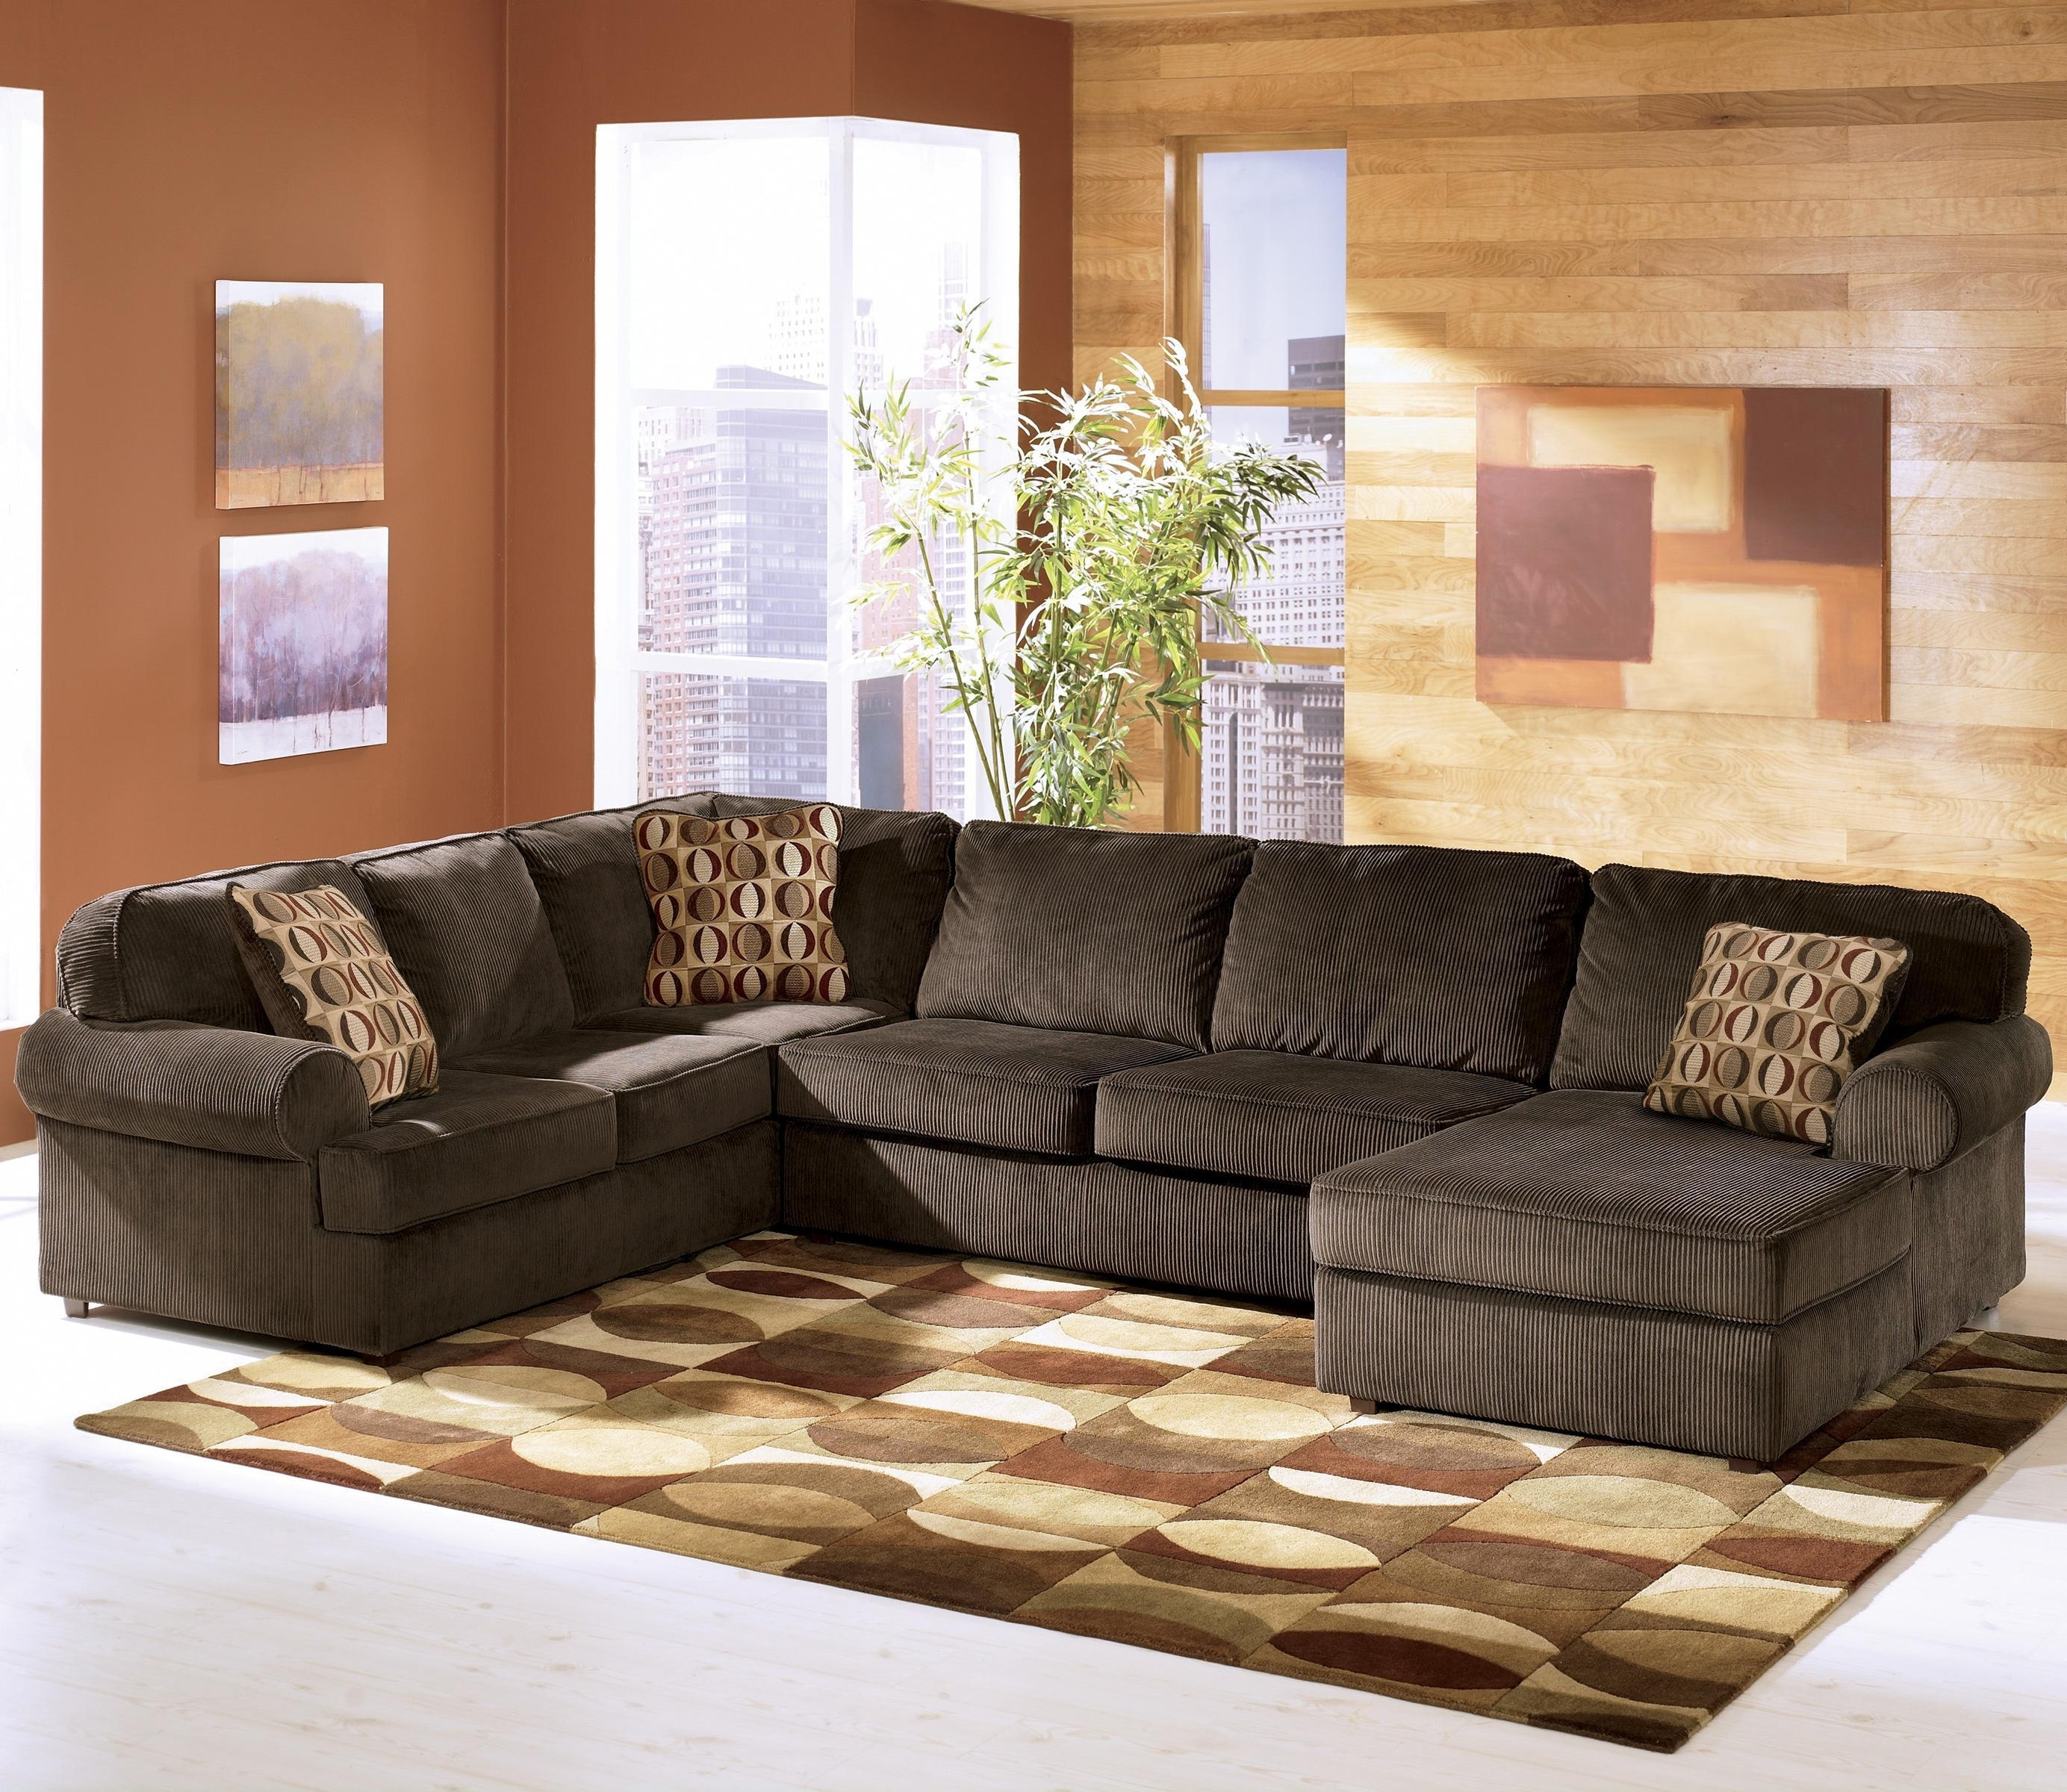 Famous Sectional Sofas At Ashley Intended For Ashley Furniture Sectional Sofas (View 14 of 20)